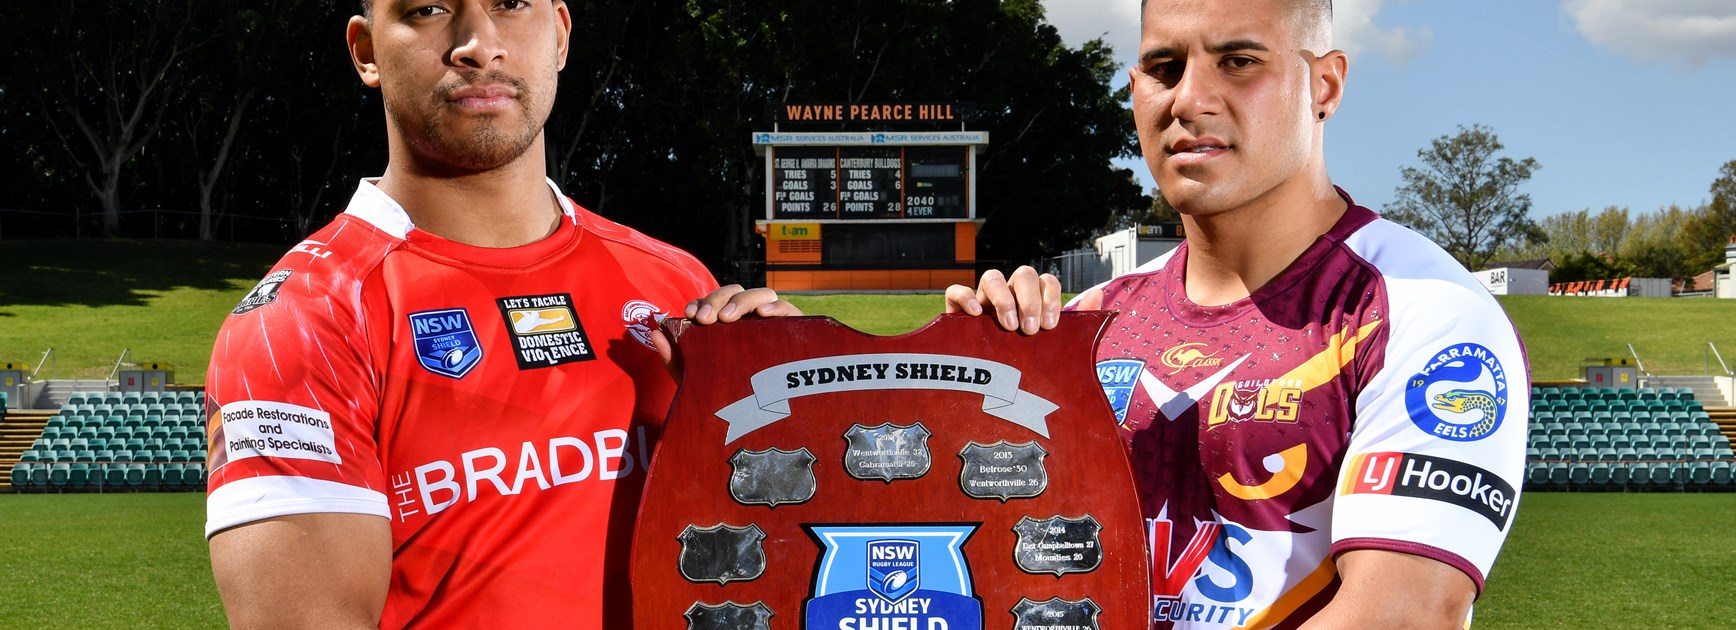 PREVIEW | 2018 Sydney Shield Grand Final